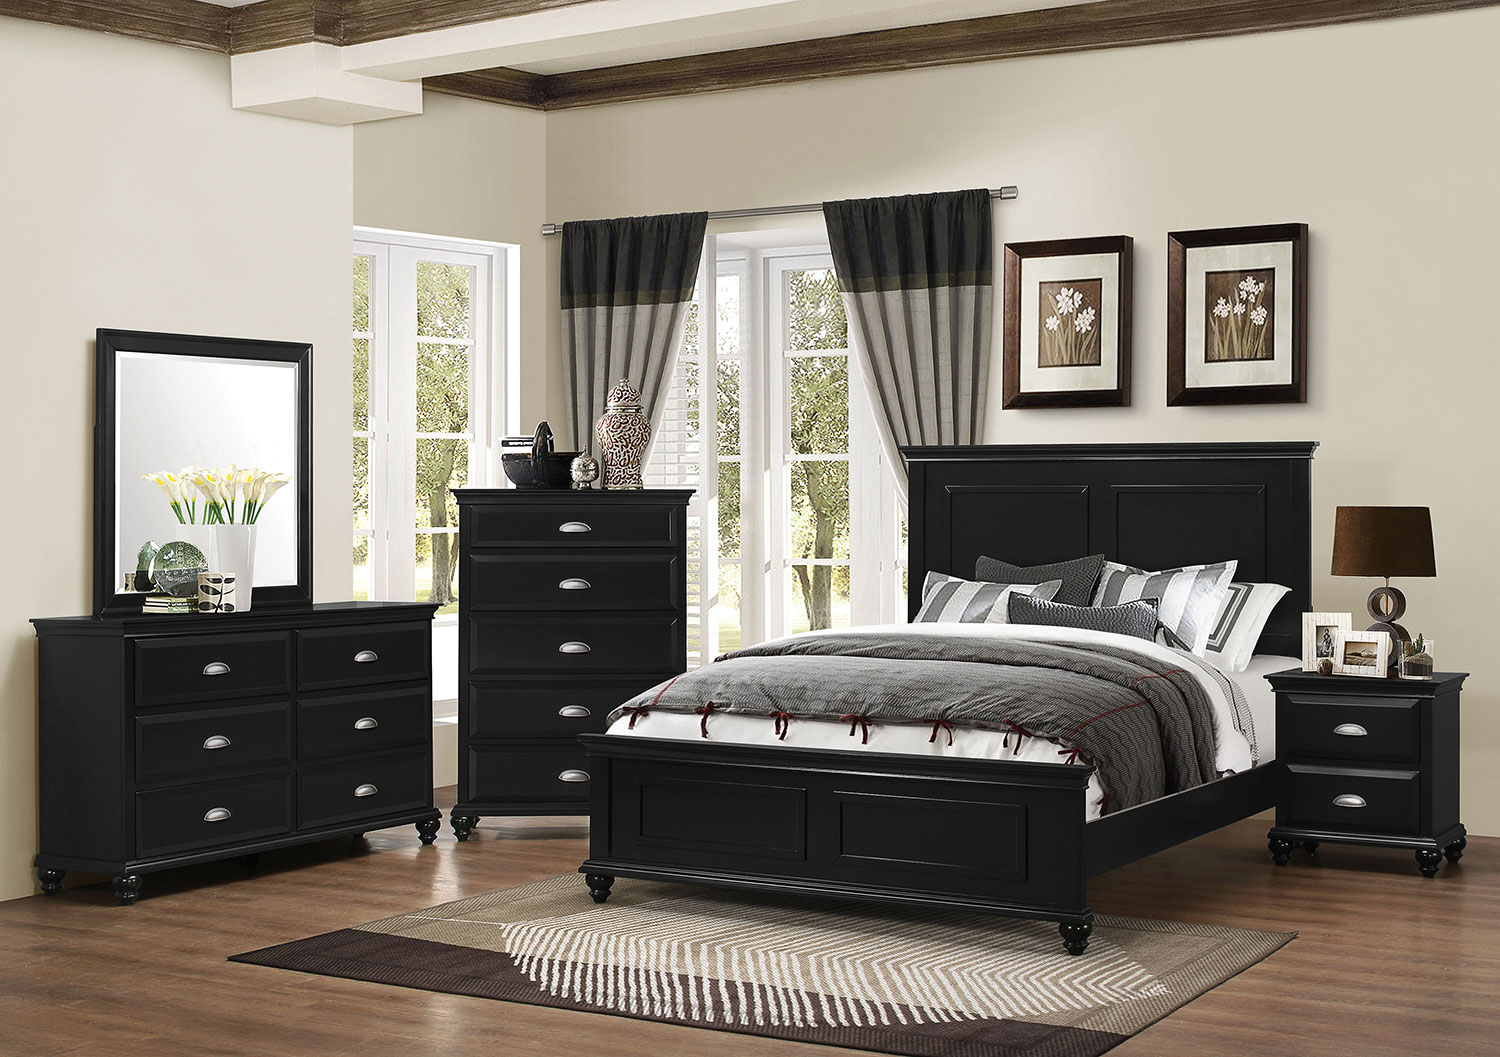 Meadow Grove 4-Piece King Bedroom Set with Dresser, Mirror and Chest - Black